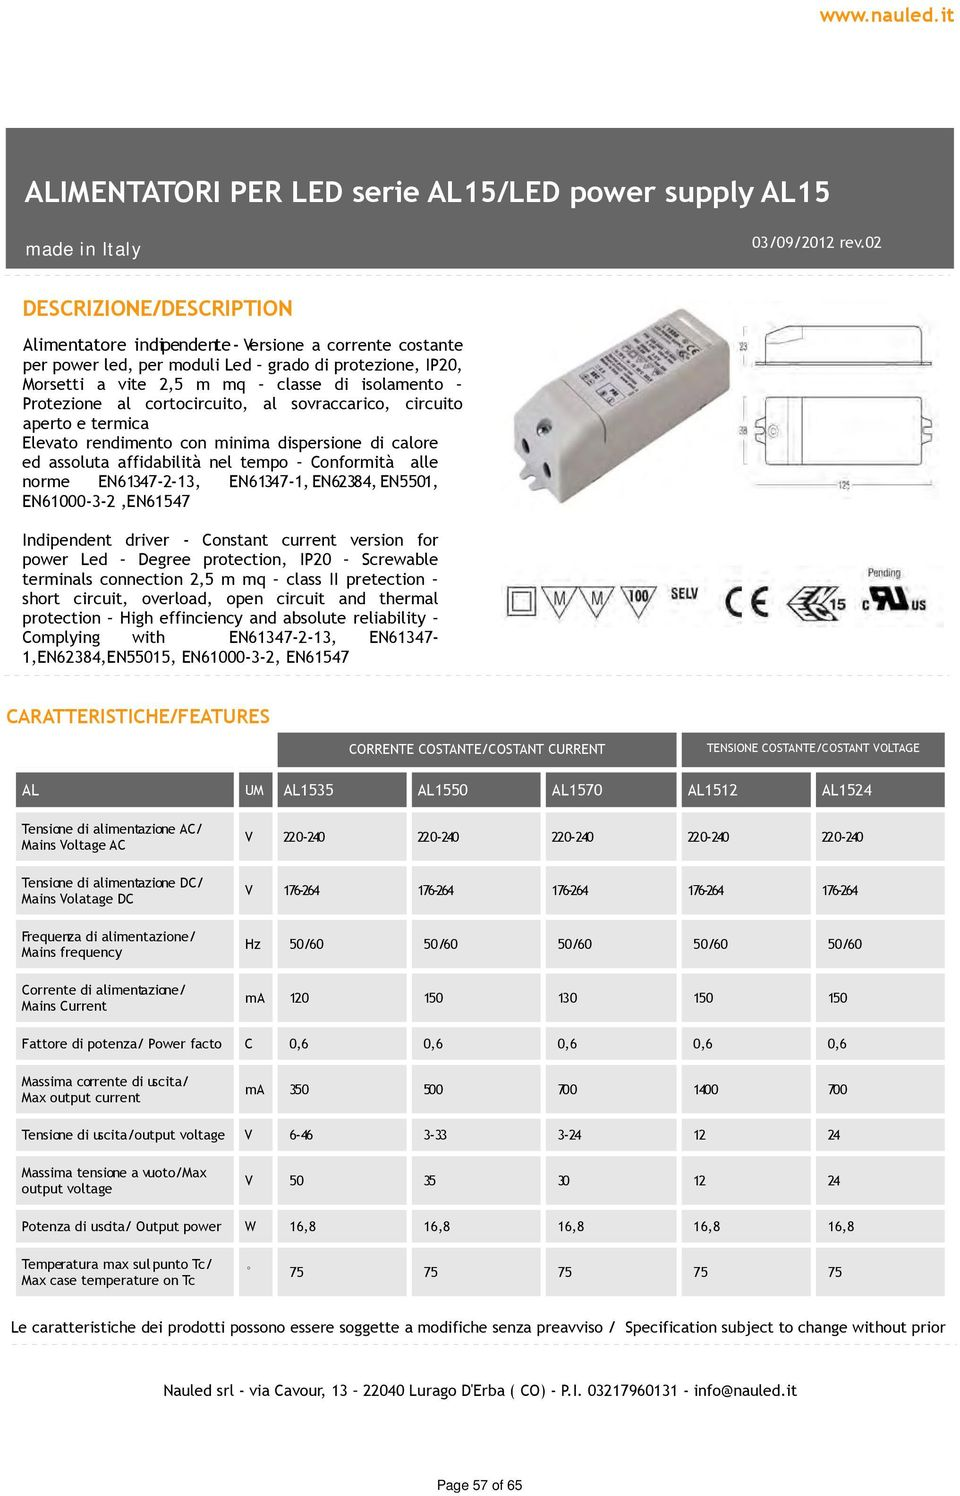 EN61347-2-13, EN61347-1,EN62384,EN5501, EN61000-3-2,EN61547 Indipendent driver - Constant current version for power Led Degree protection, IP20 Screwable terminals connection 2,5 m mq class II